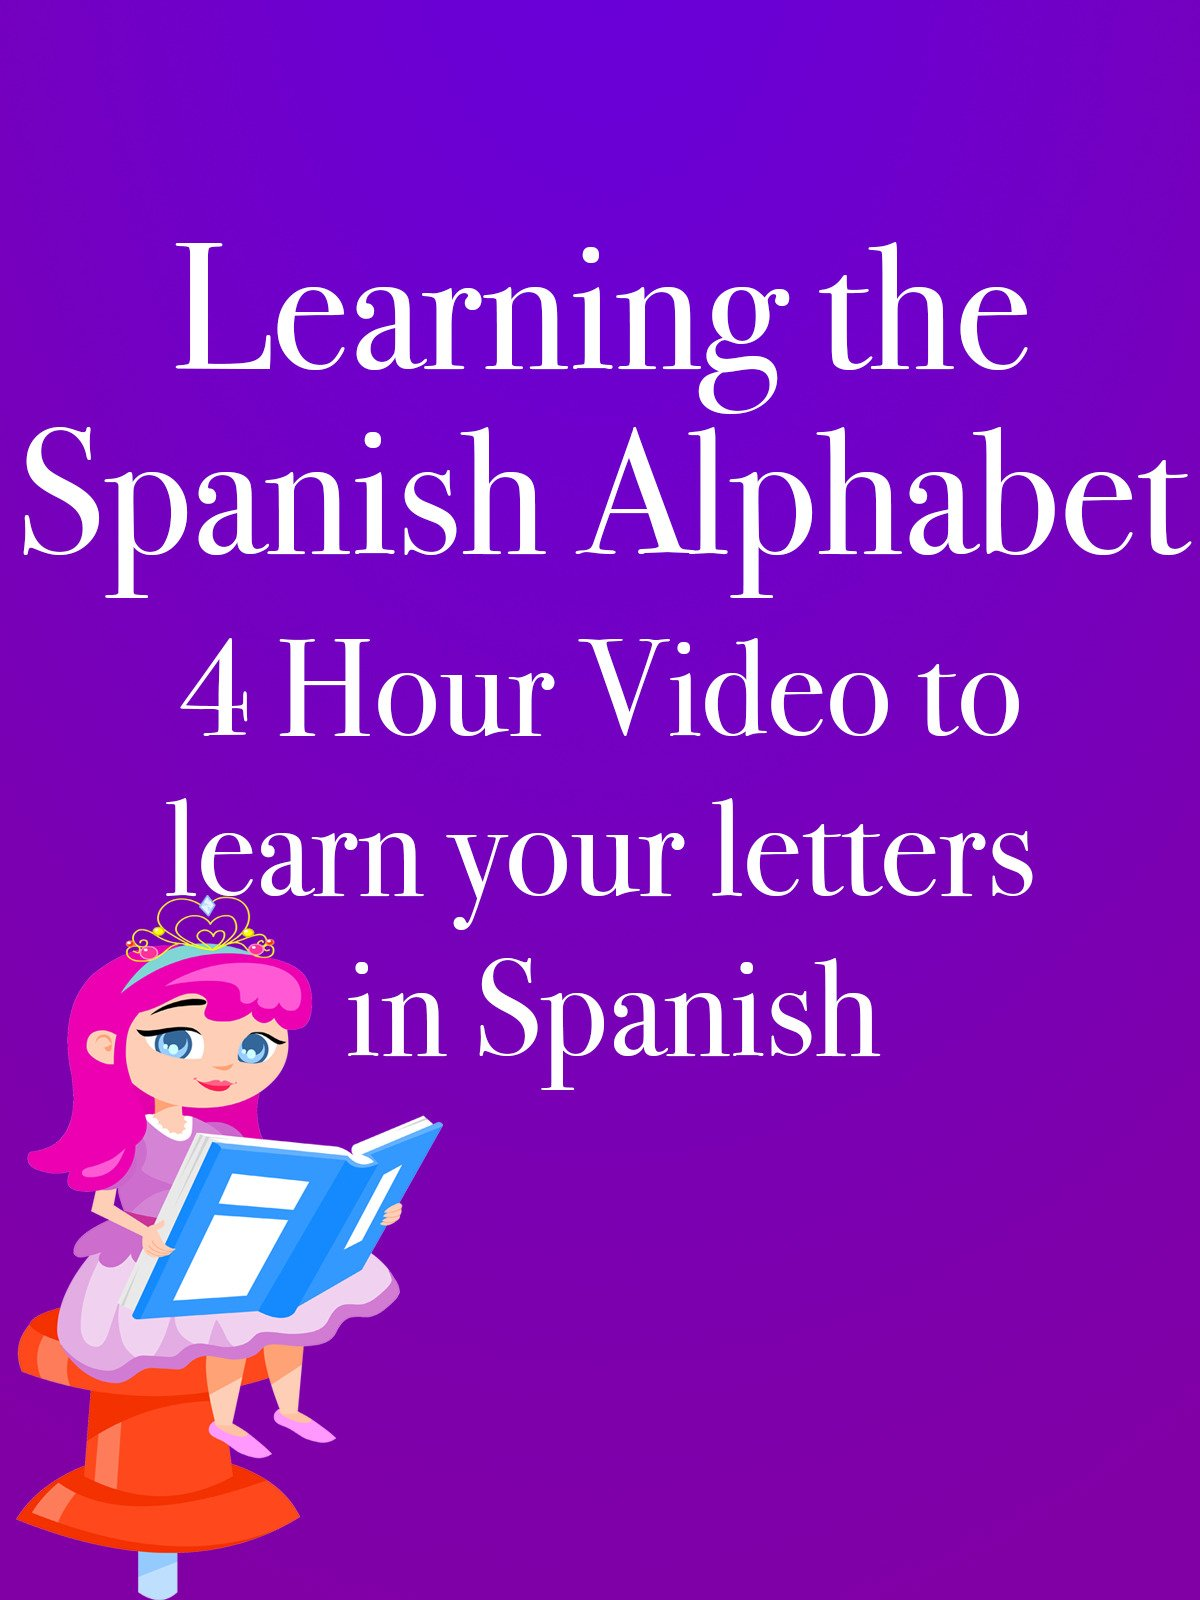 Learning the Spanish Alphabet 4 Hour Video to learn your letters in Spanish